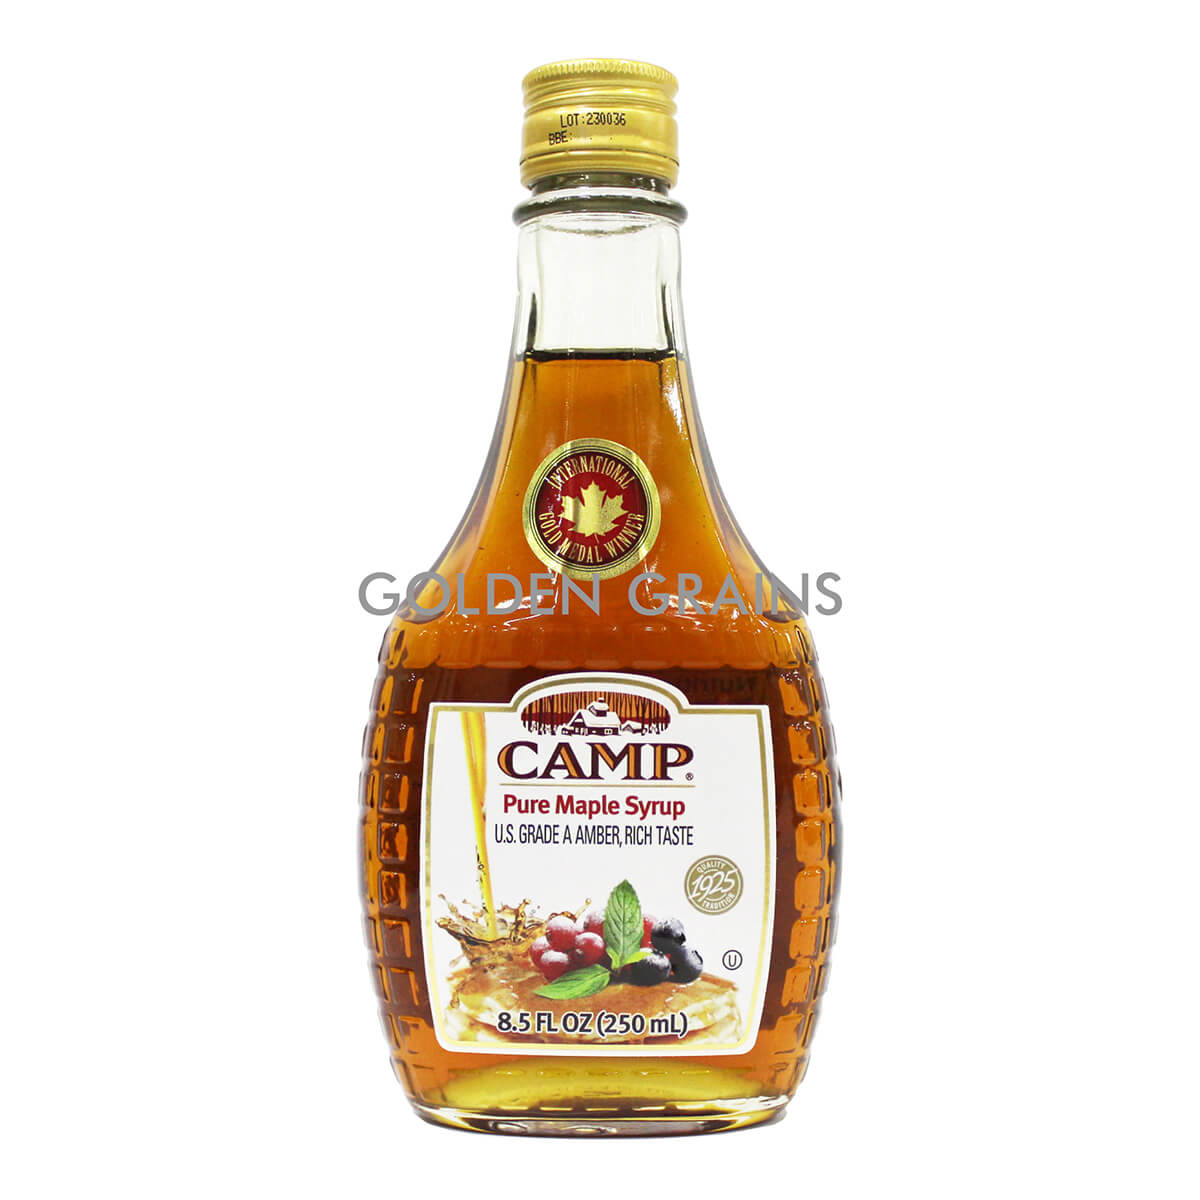 Golden Grains Camp - Maple Syrup - Front.jpg